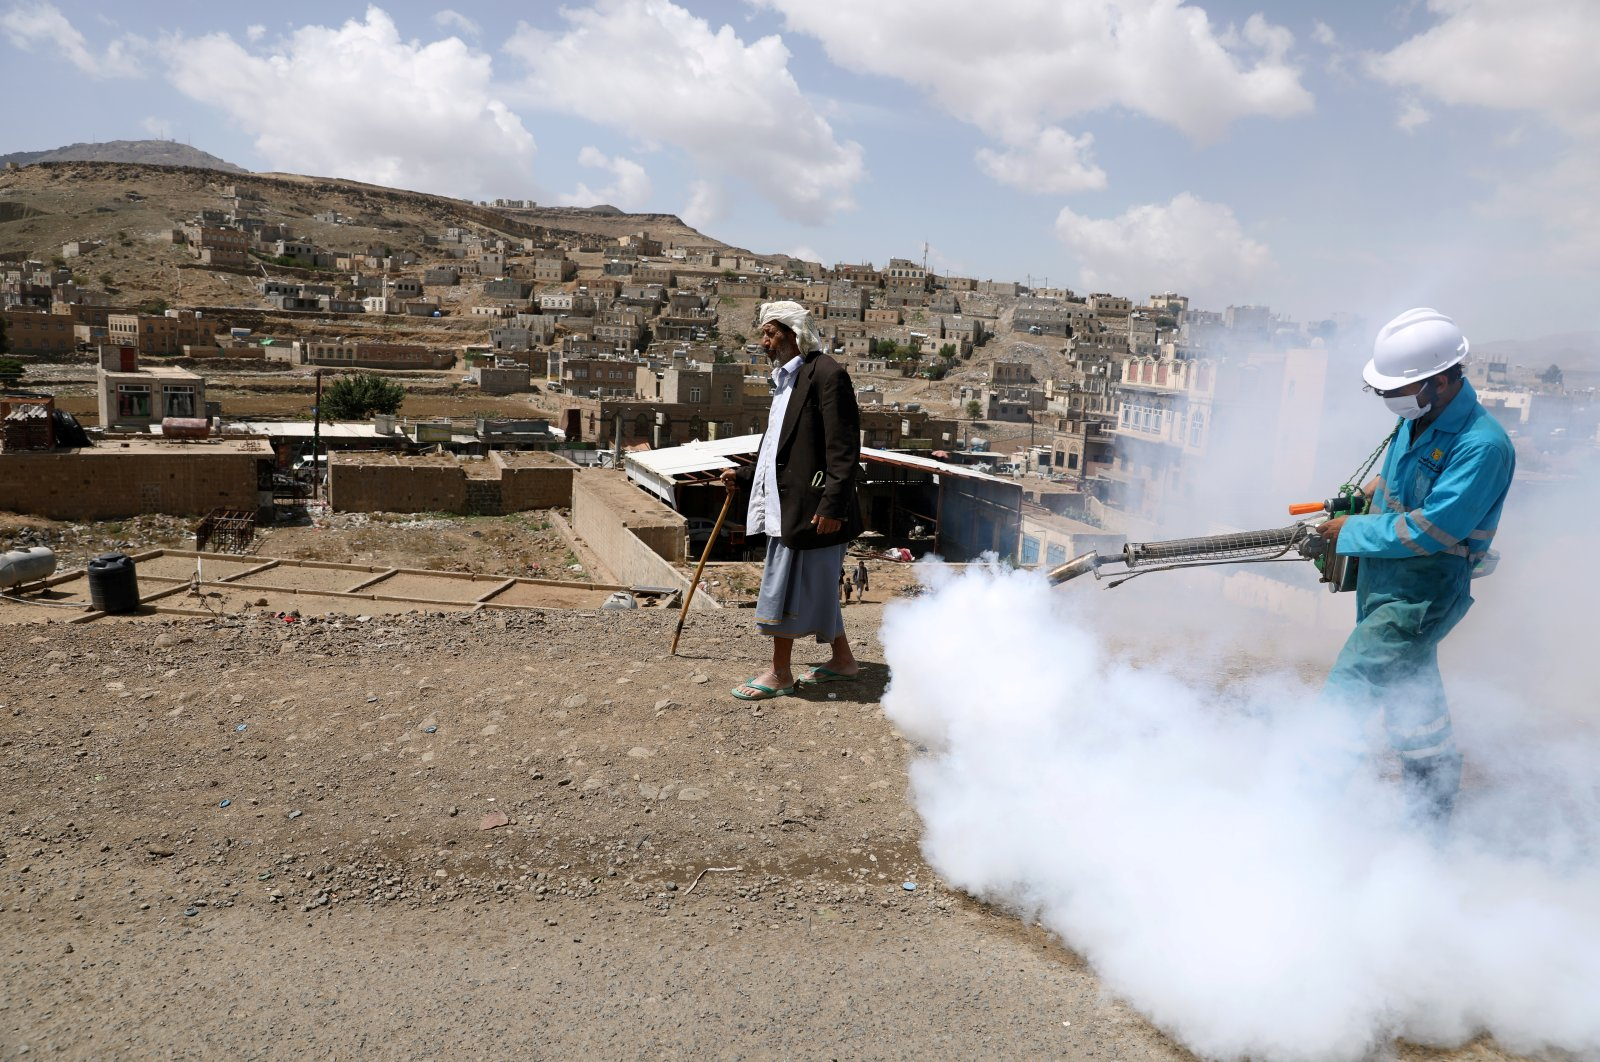 A health worker disinfects residential area during a sanitation campaign to prevent the spread of the coronavirus disease (COVID-19), on the outskirts of Sanaa, Yemen April 13, 2020. Picture taken April 13, 2020. (Reuters Photo)